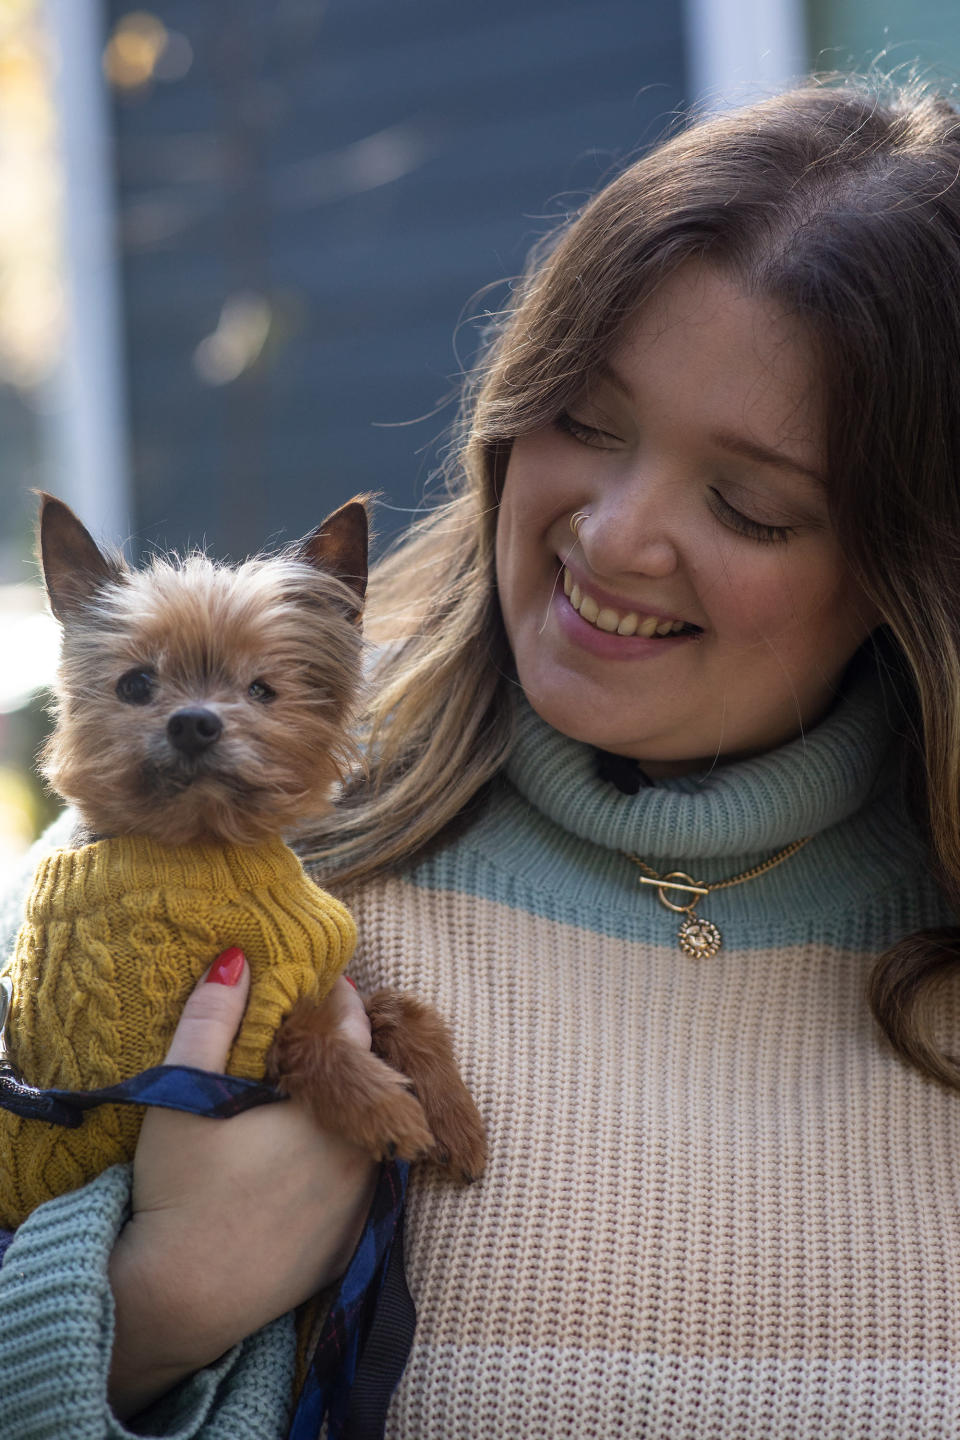 """Kursten Hedgis holds her dog Bitsy in front of her home Dec. 9, 2020, in Decatur, Ga. Bitsy is 14 and has been with her six years after a life as a breeder in a puppy mill. He is blind in one eye and suffers periodic infections and incontinence. Trips to the veterinarian have been """"really scary"""" because of the masks and reduced contacts. However, Hedgis and other pet owners say they have become more than companions in recent months, that they provide valuable emotional support to their humans. (AP Photo/Ron Harris)"""